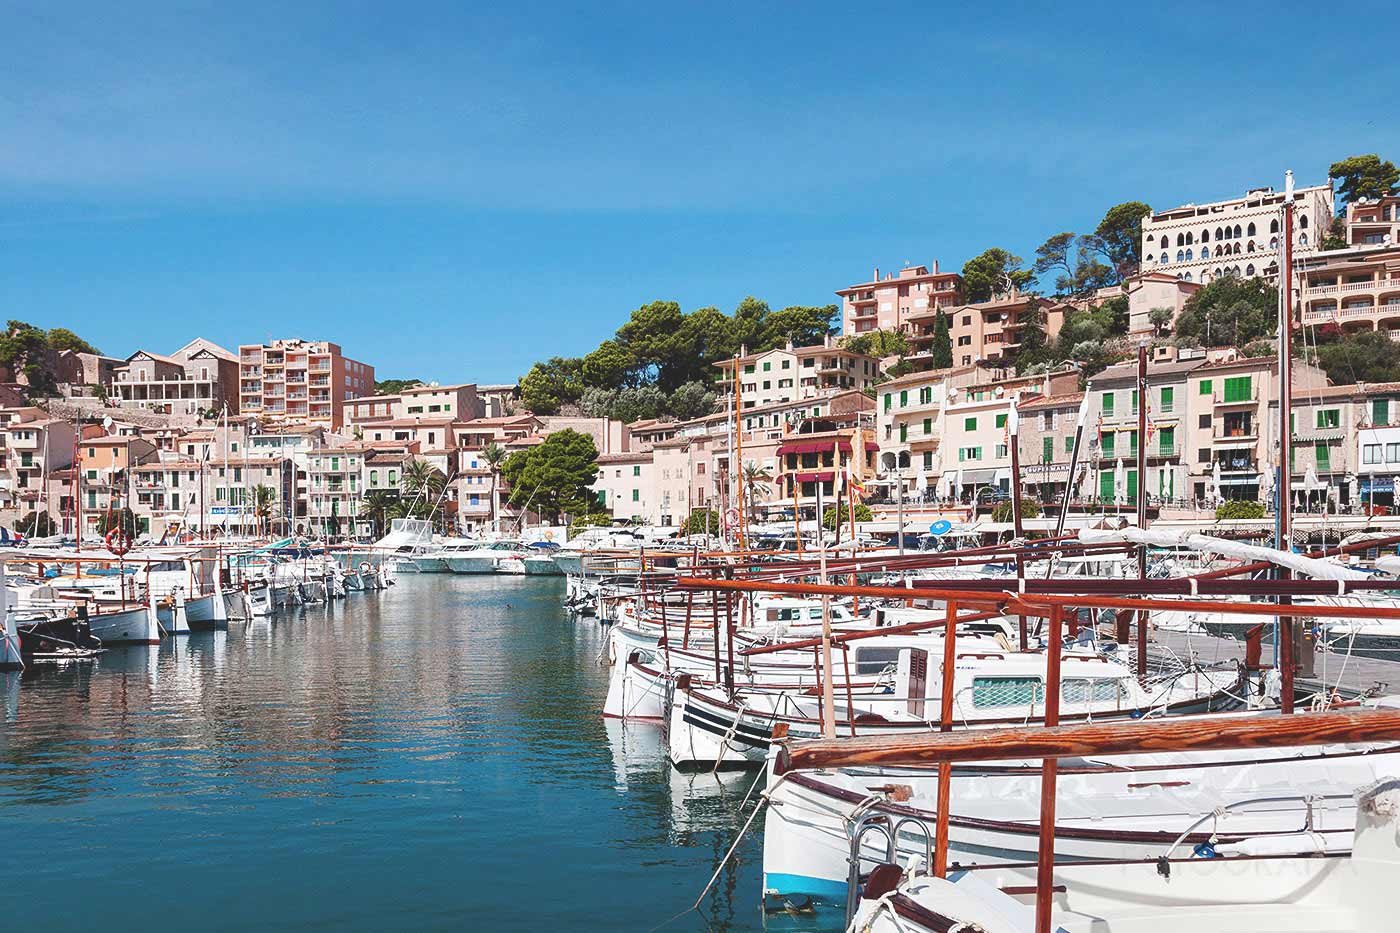 Image of Port of Sóller with boats on water